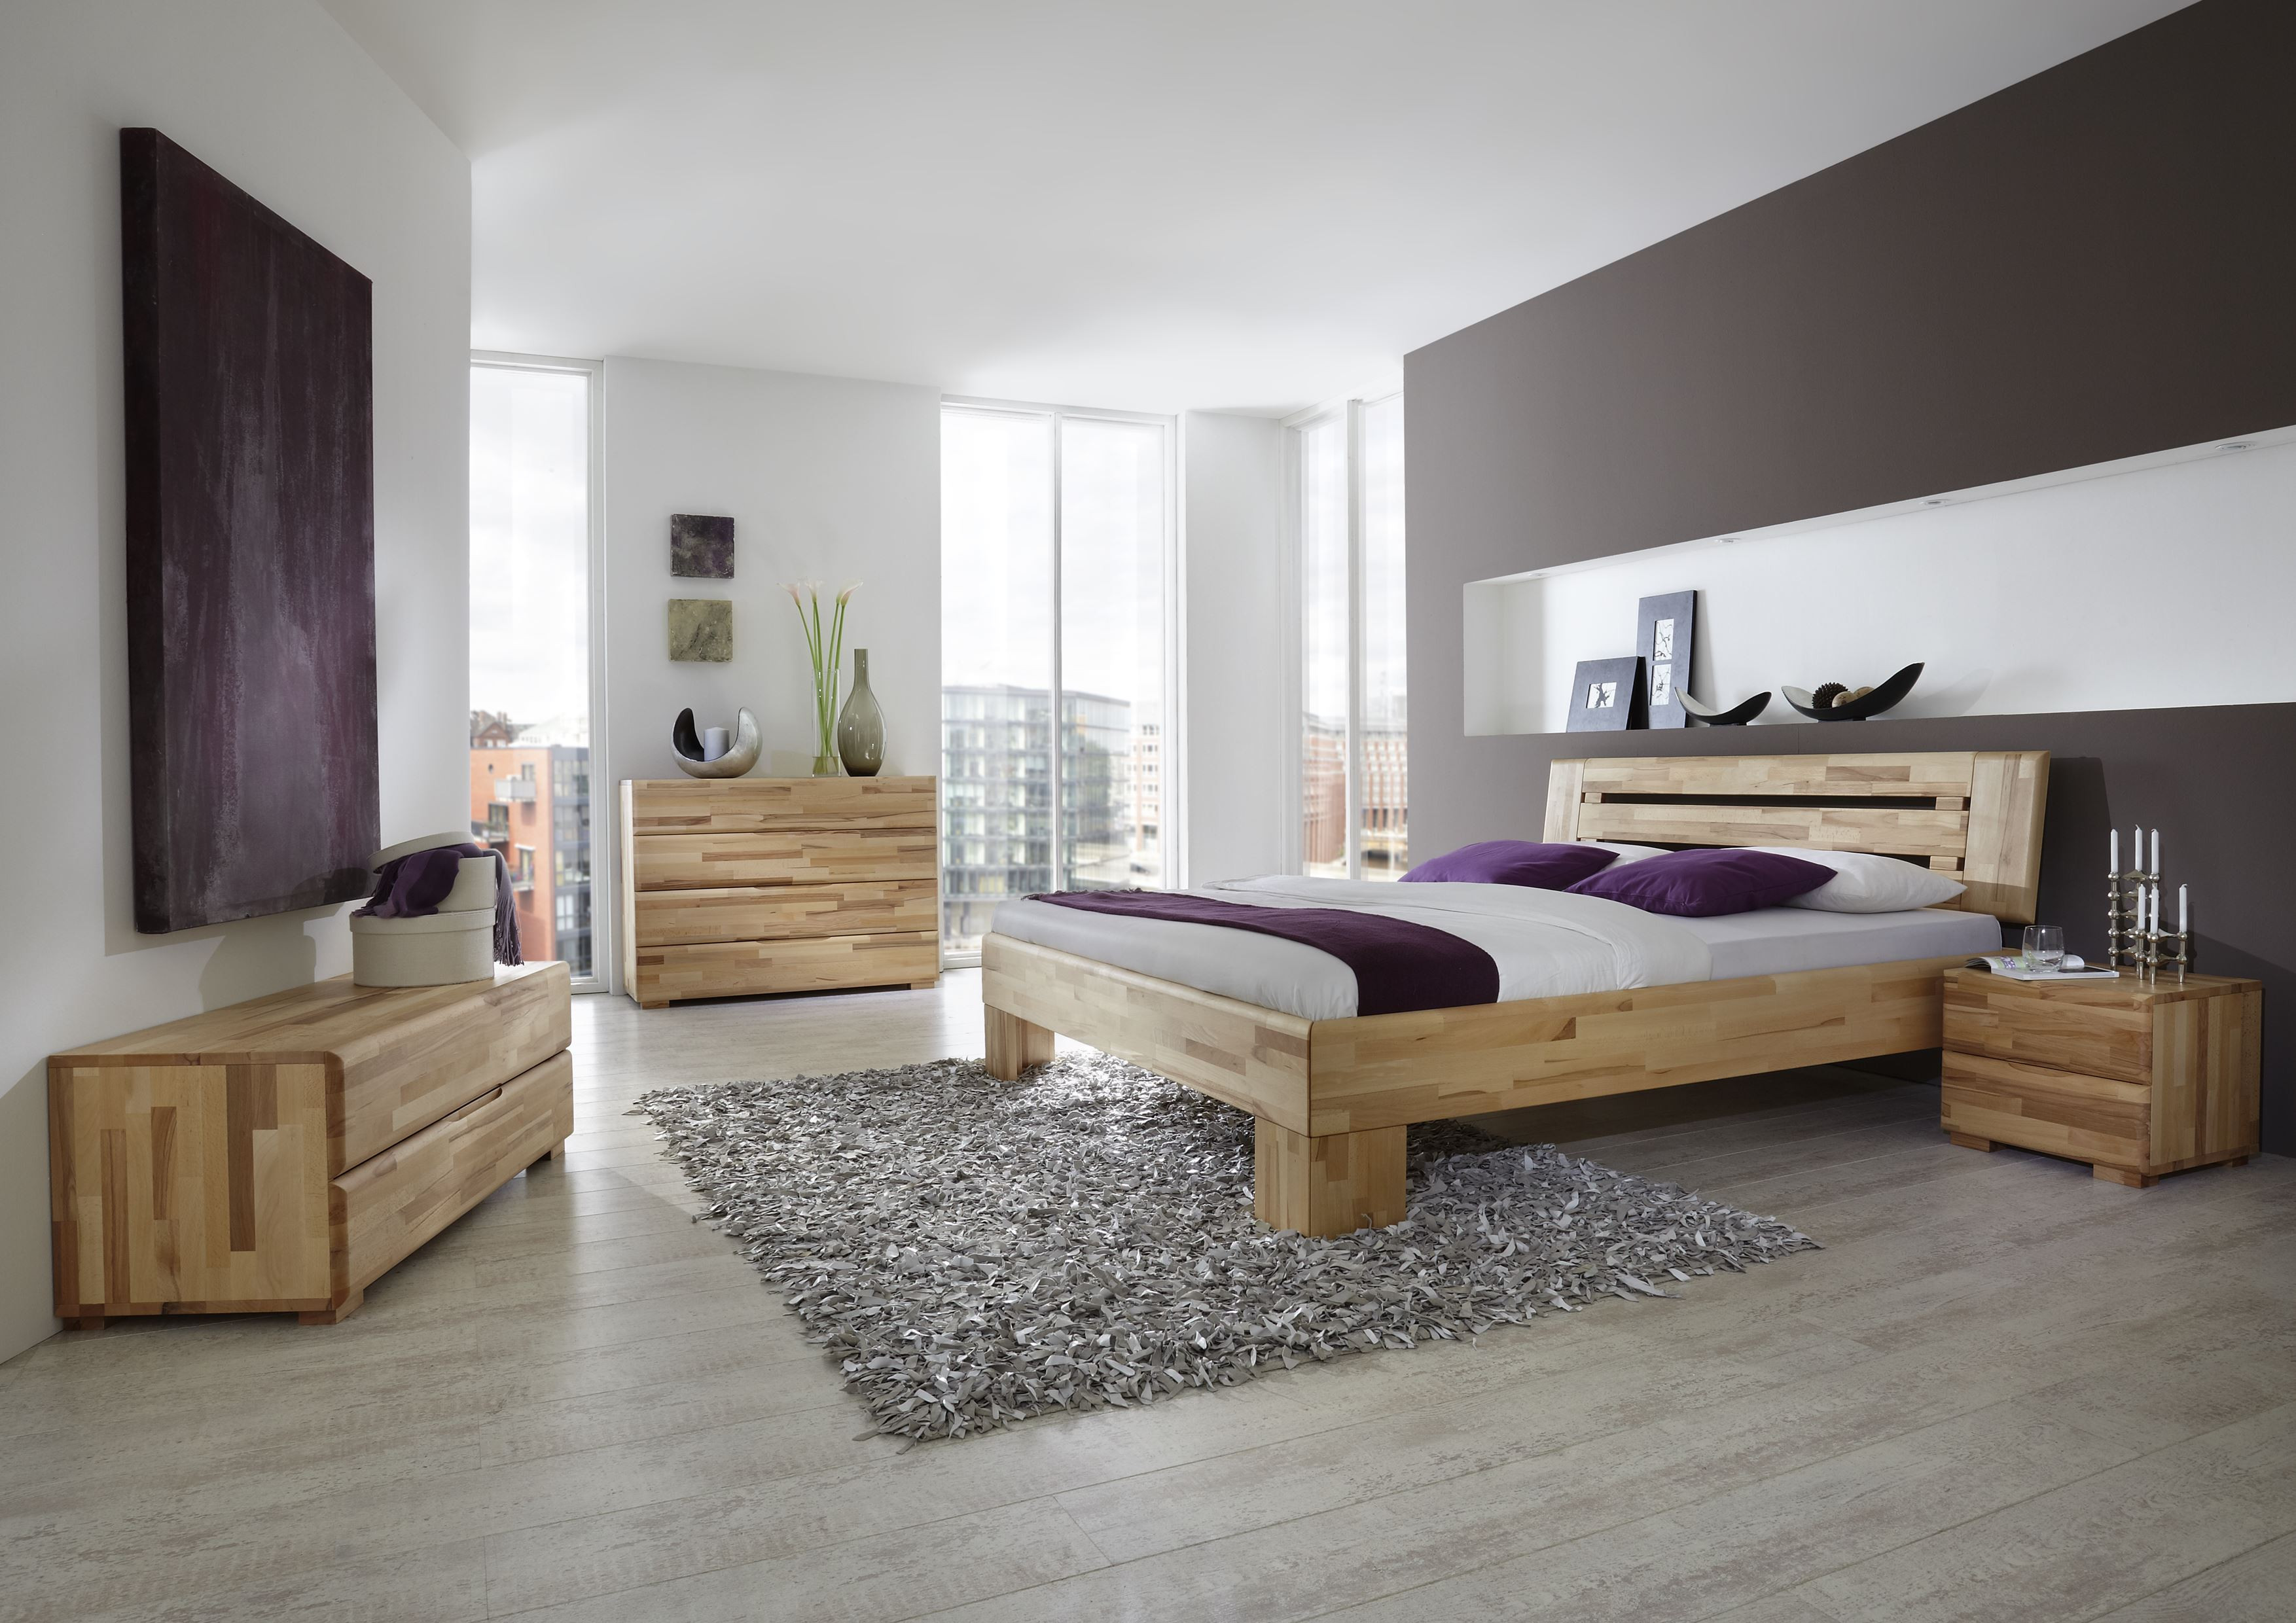 dico m bel avantgarde kernbuche massiv m bel letz ihr online shop. Black Bedroom Furniture Sets. Home Design Ideas